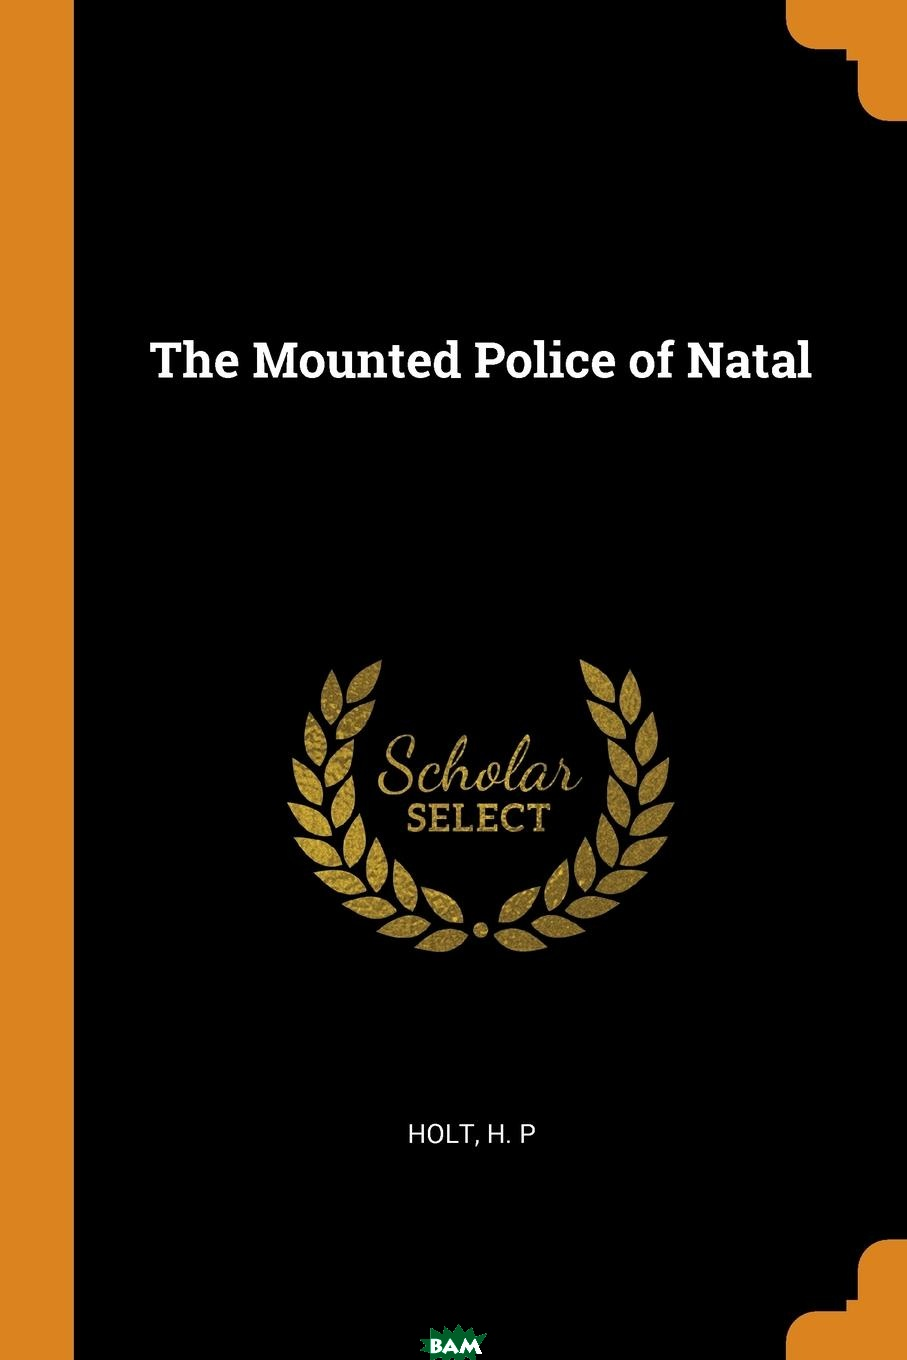 Купить The Mounted Police of Natal, Holt H. P, 9780353088795